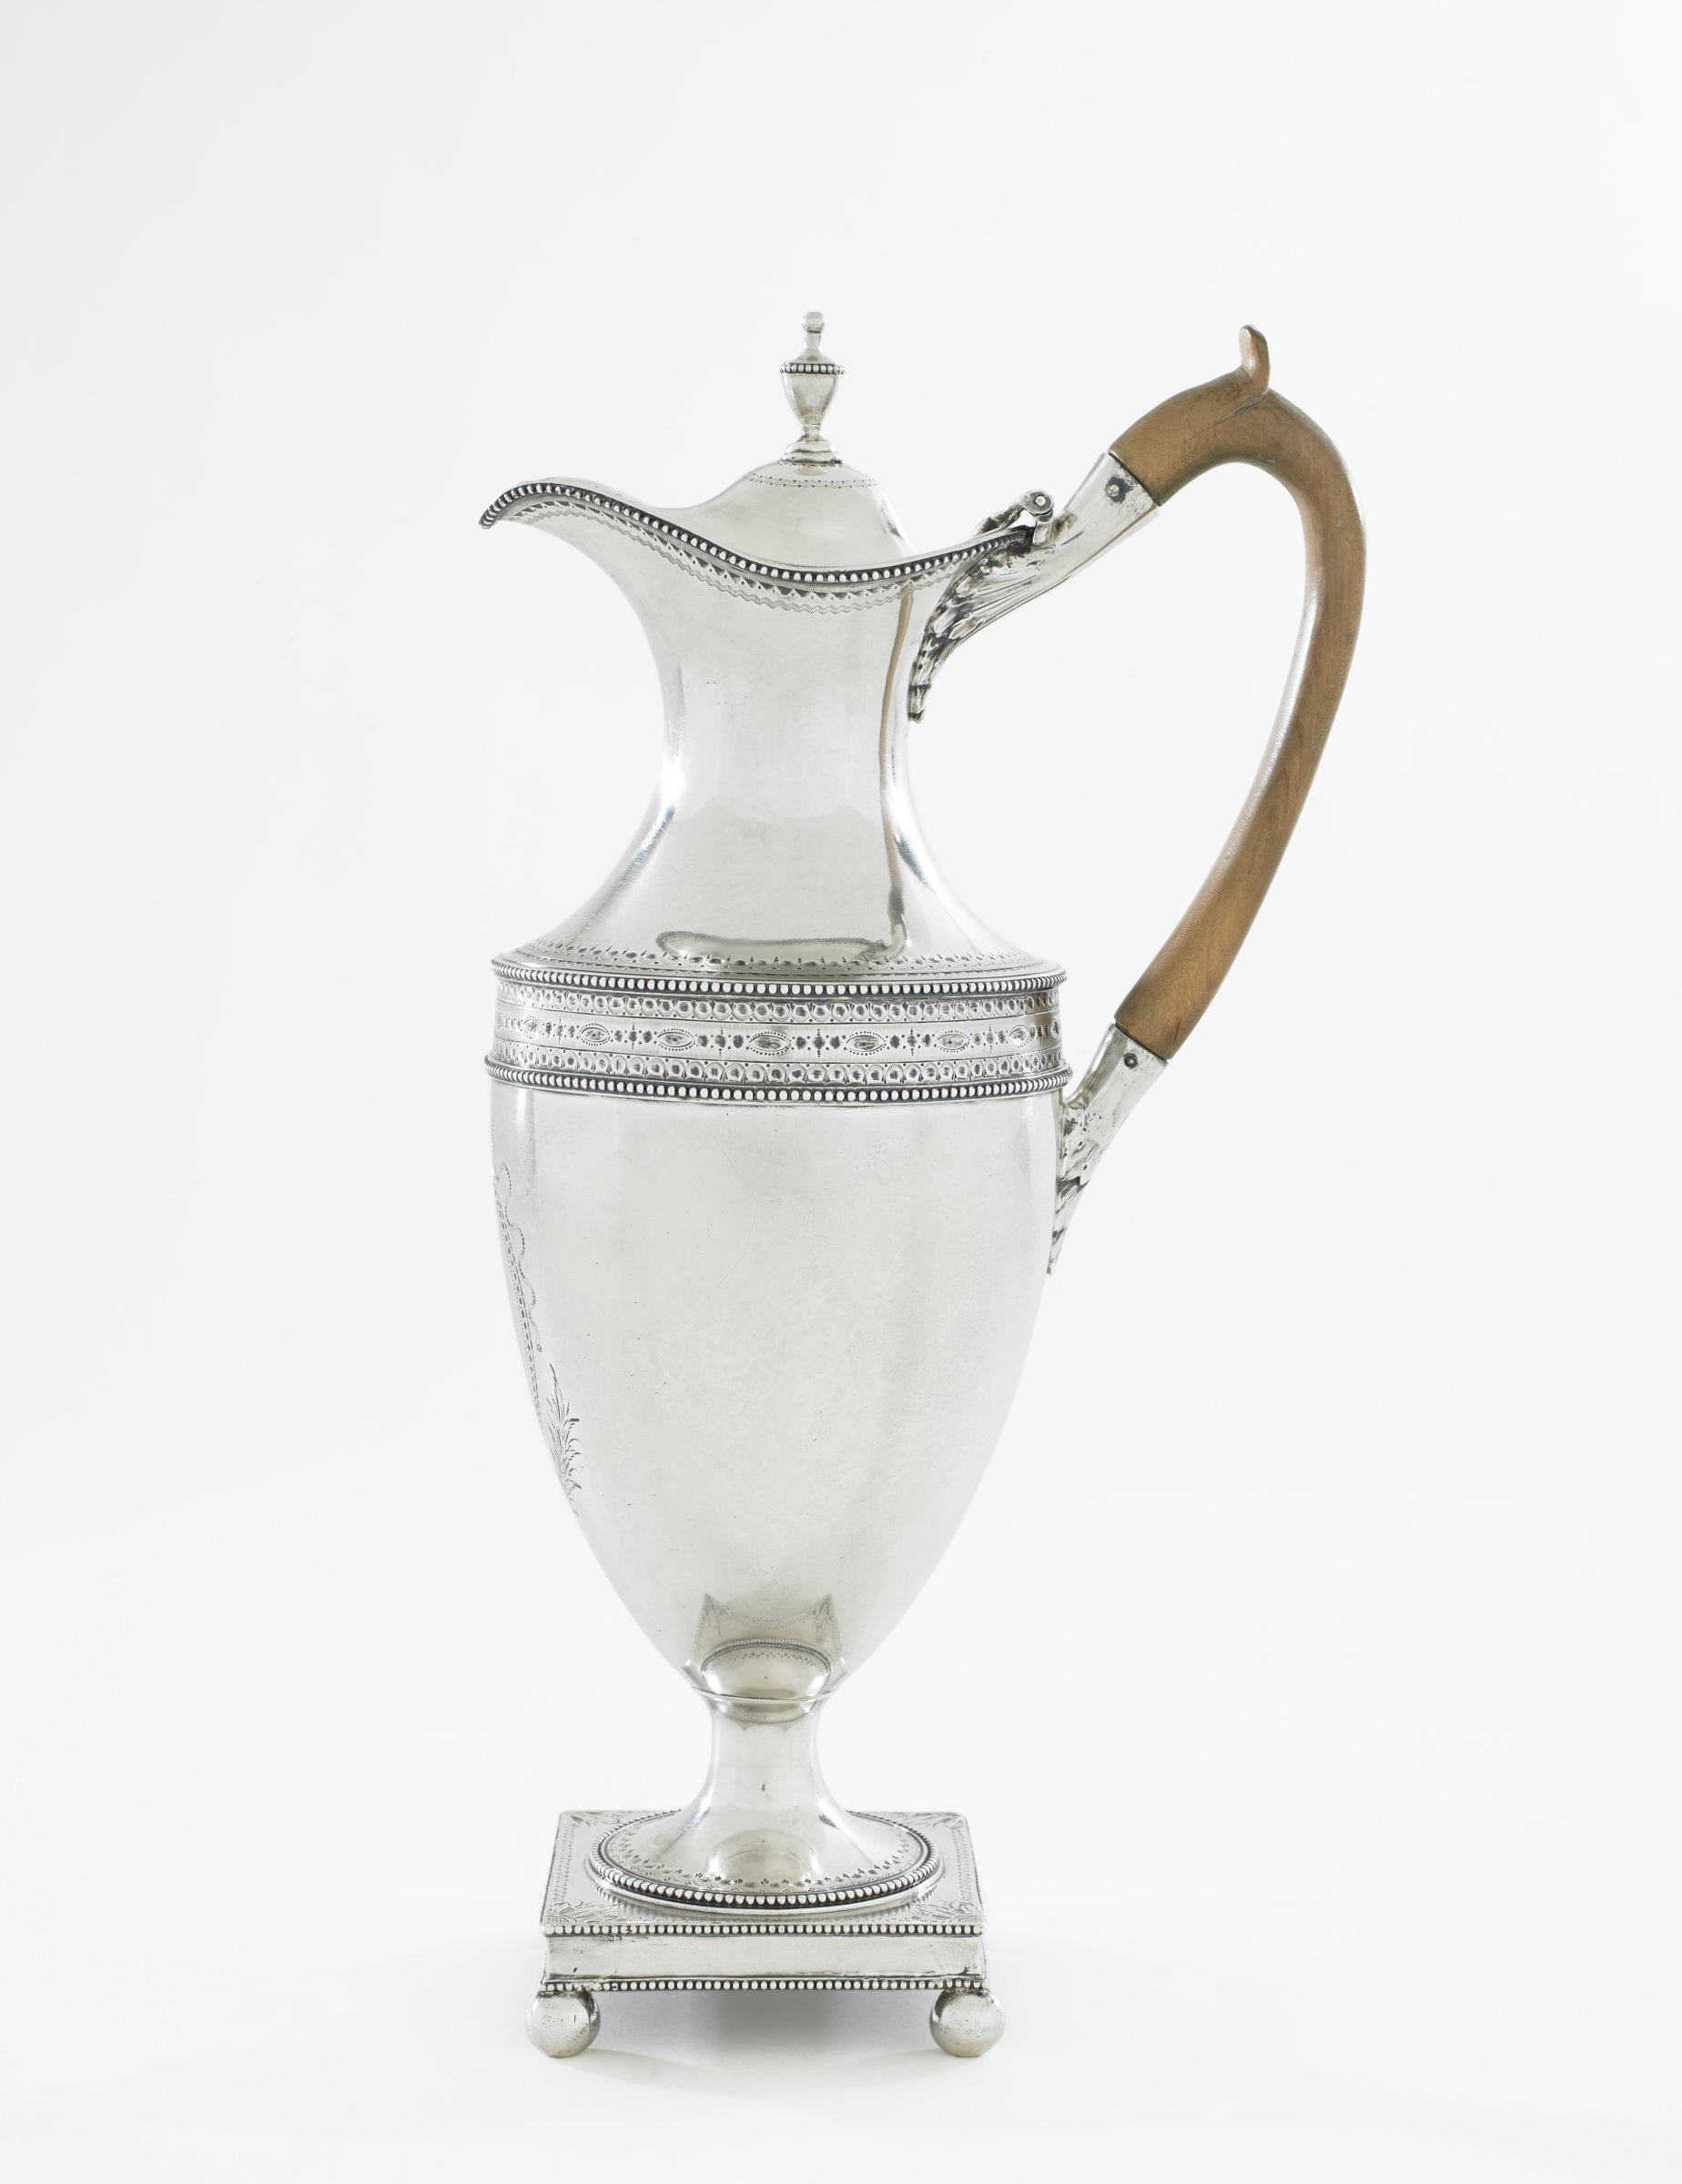 Silver hot water jug resting on short stem that tapers to small, round beaded foot accented with bright-cut engraving in a scallops and dot pattern, resting on a square plinth with four ball feet, the plinth decorated with bright-cut engraving comprised of floral elements at each corner with dots in between, the urn-shaped body with a wide band of engraved ovals and dots at the shoulder between an upper and lower band of beading, the neck narrows in the middle, the lower edge likewise engraved with a decorative pattern, the beak-shaped spout edged with beading, the hinged lid with urn finial, with attached ear-shaped walnut handle with thumb rest, the main body under the spout engraved with an oval reserve with crossed leafy branches and a ribbon (left empty).